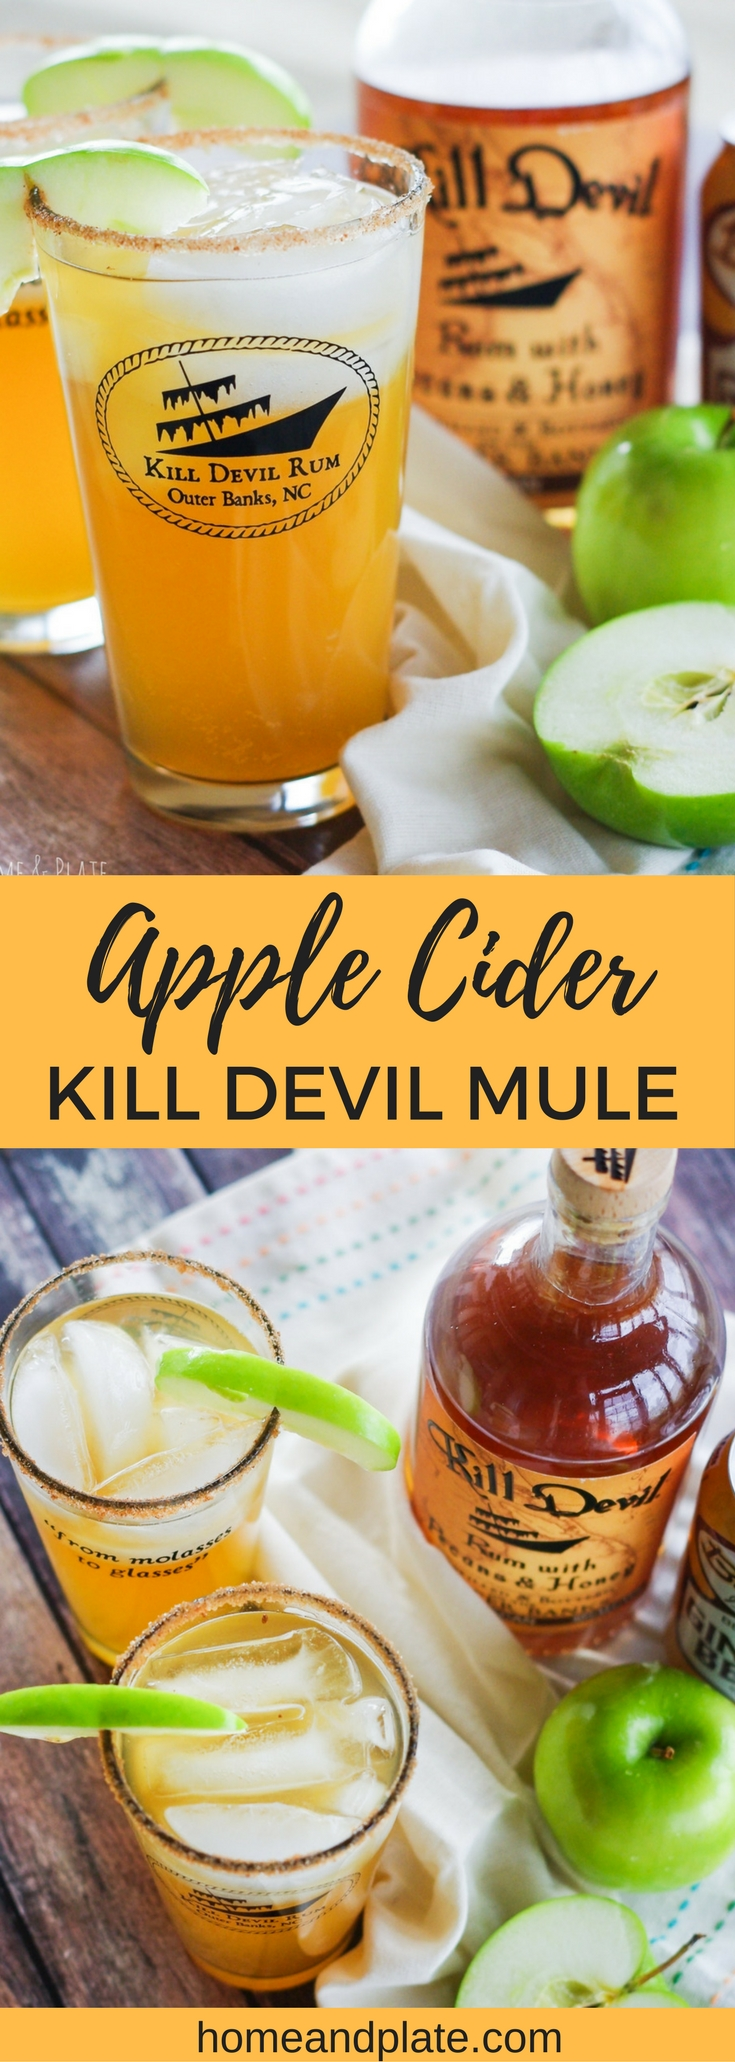 Apple Cider Kill Devil Mule | www.homeandplate.com | A boozy burst of pecan and honey rum blended with ginger beer and sweet apple cider makes a delicious cocktail for any fall or winter day.